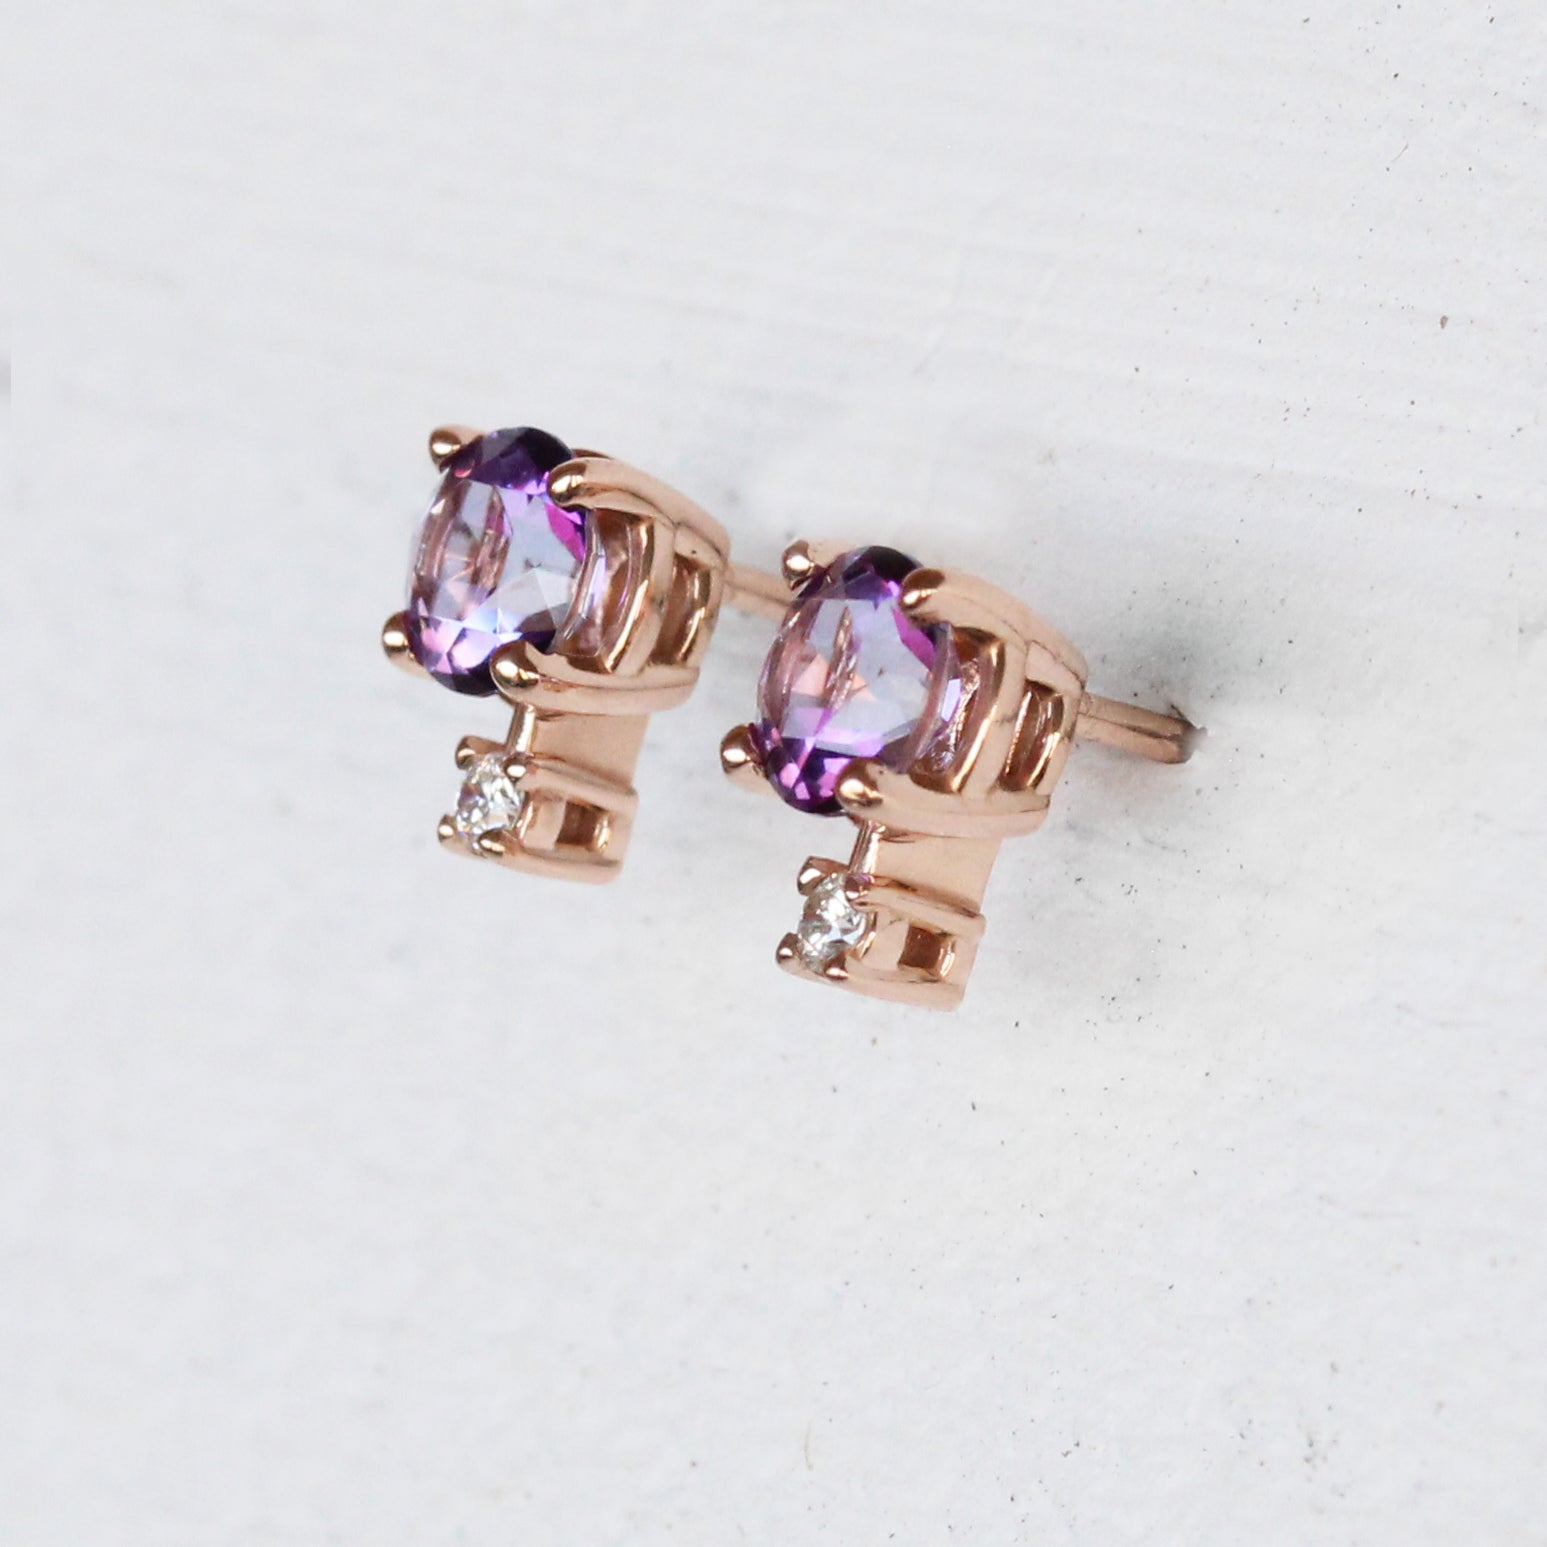 Joanna Earrings with Violet Topaz and Diamond Accents - 14k Gold of Your Choice - Made to Order - Salt & Pepper Celestial Diamond Engagement Rings and Wedding Bands  by Midwinter Co.